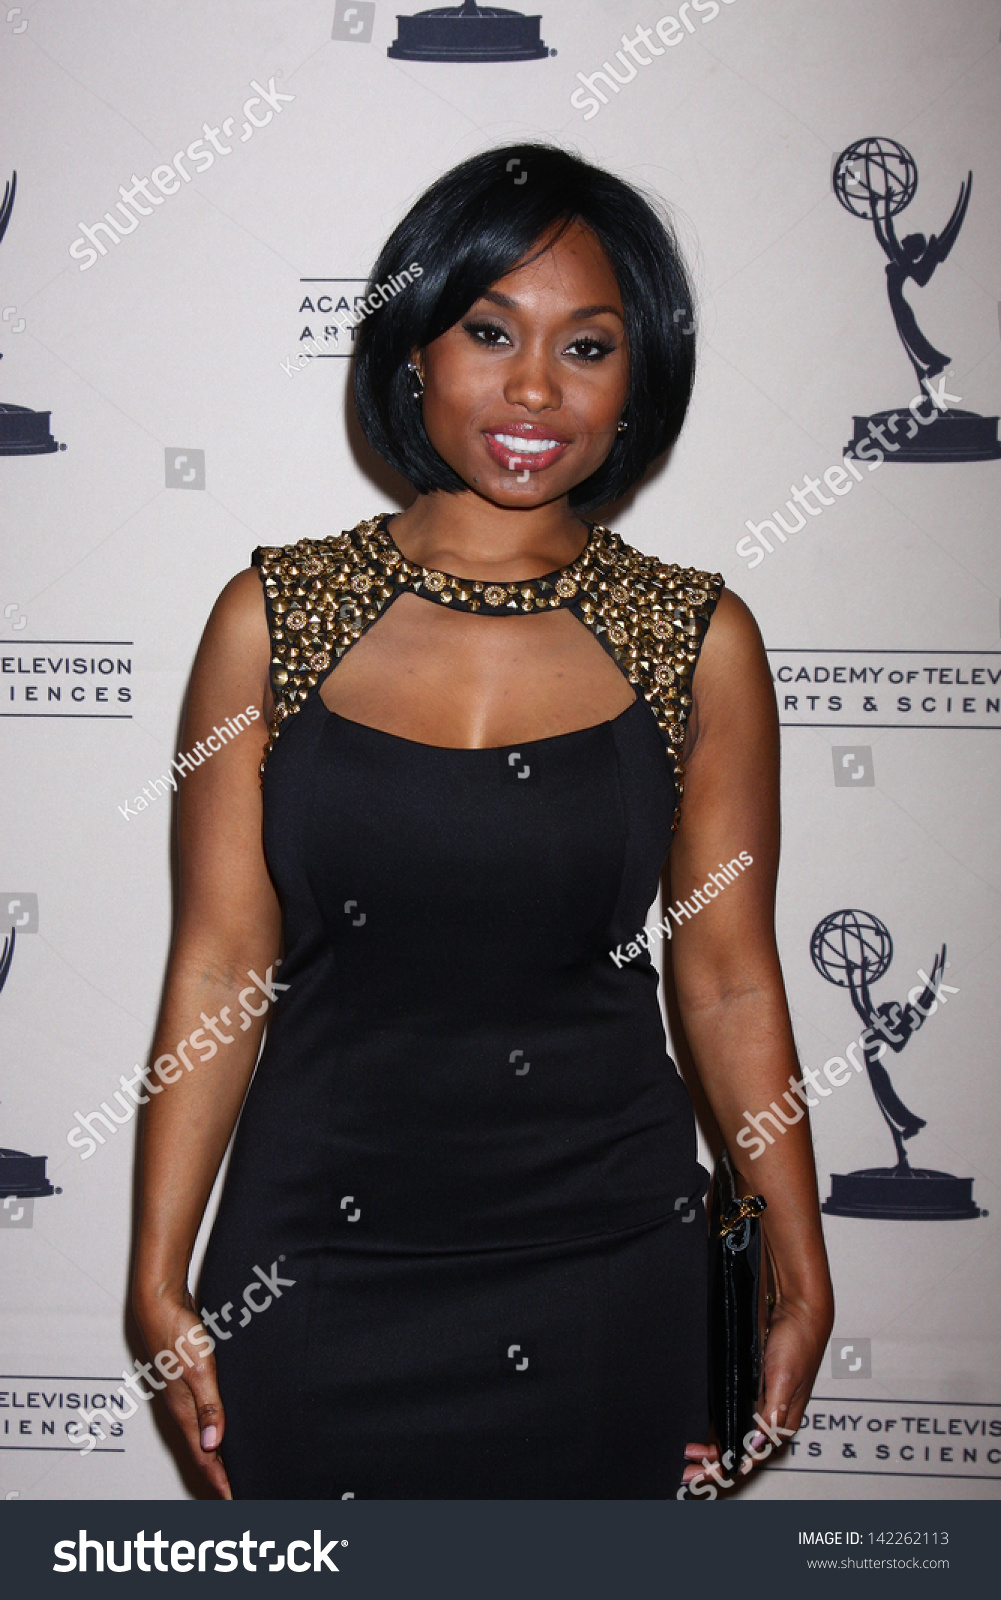 Think, angell conwell body